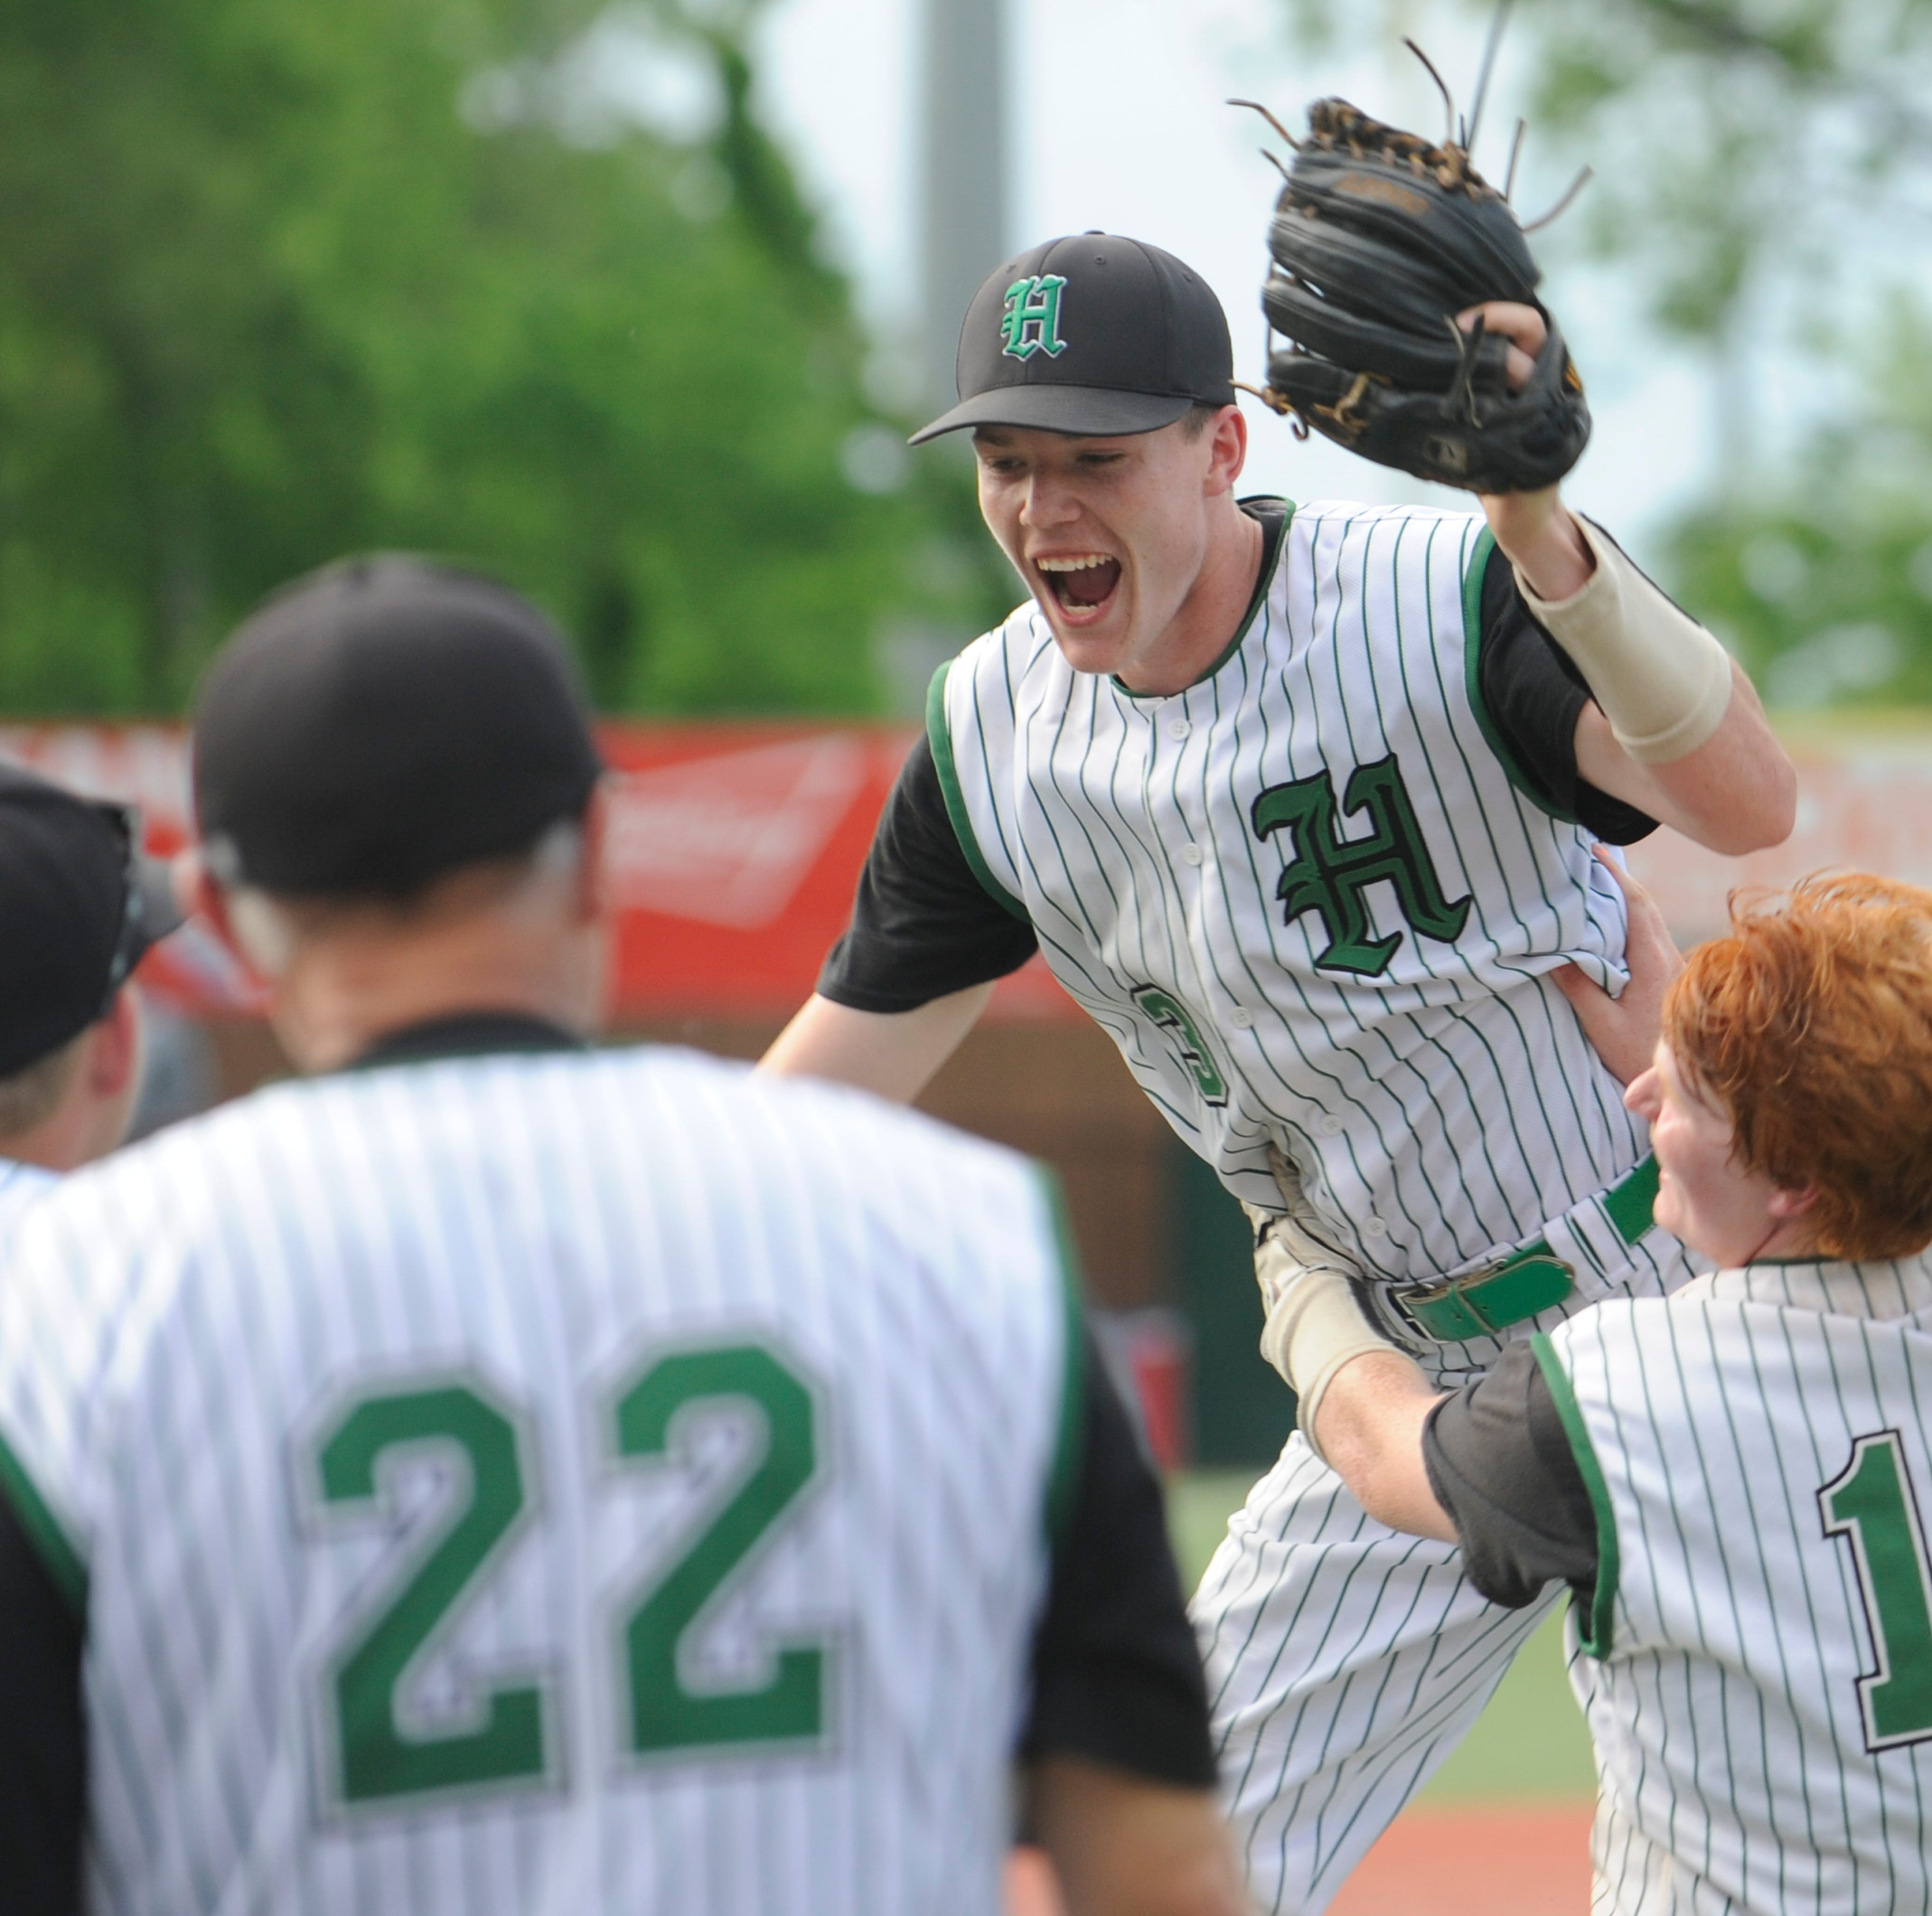 History made: Huntington High School baseball wins first district title in school history